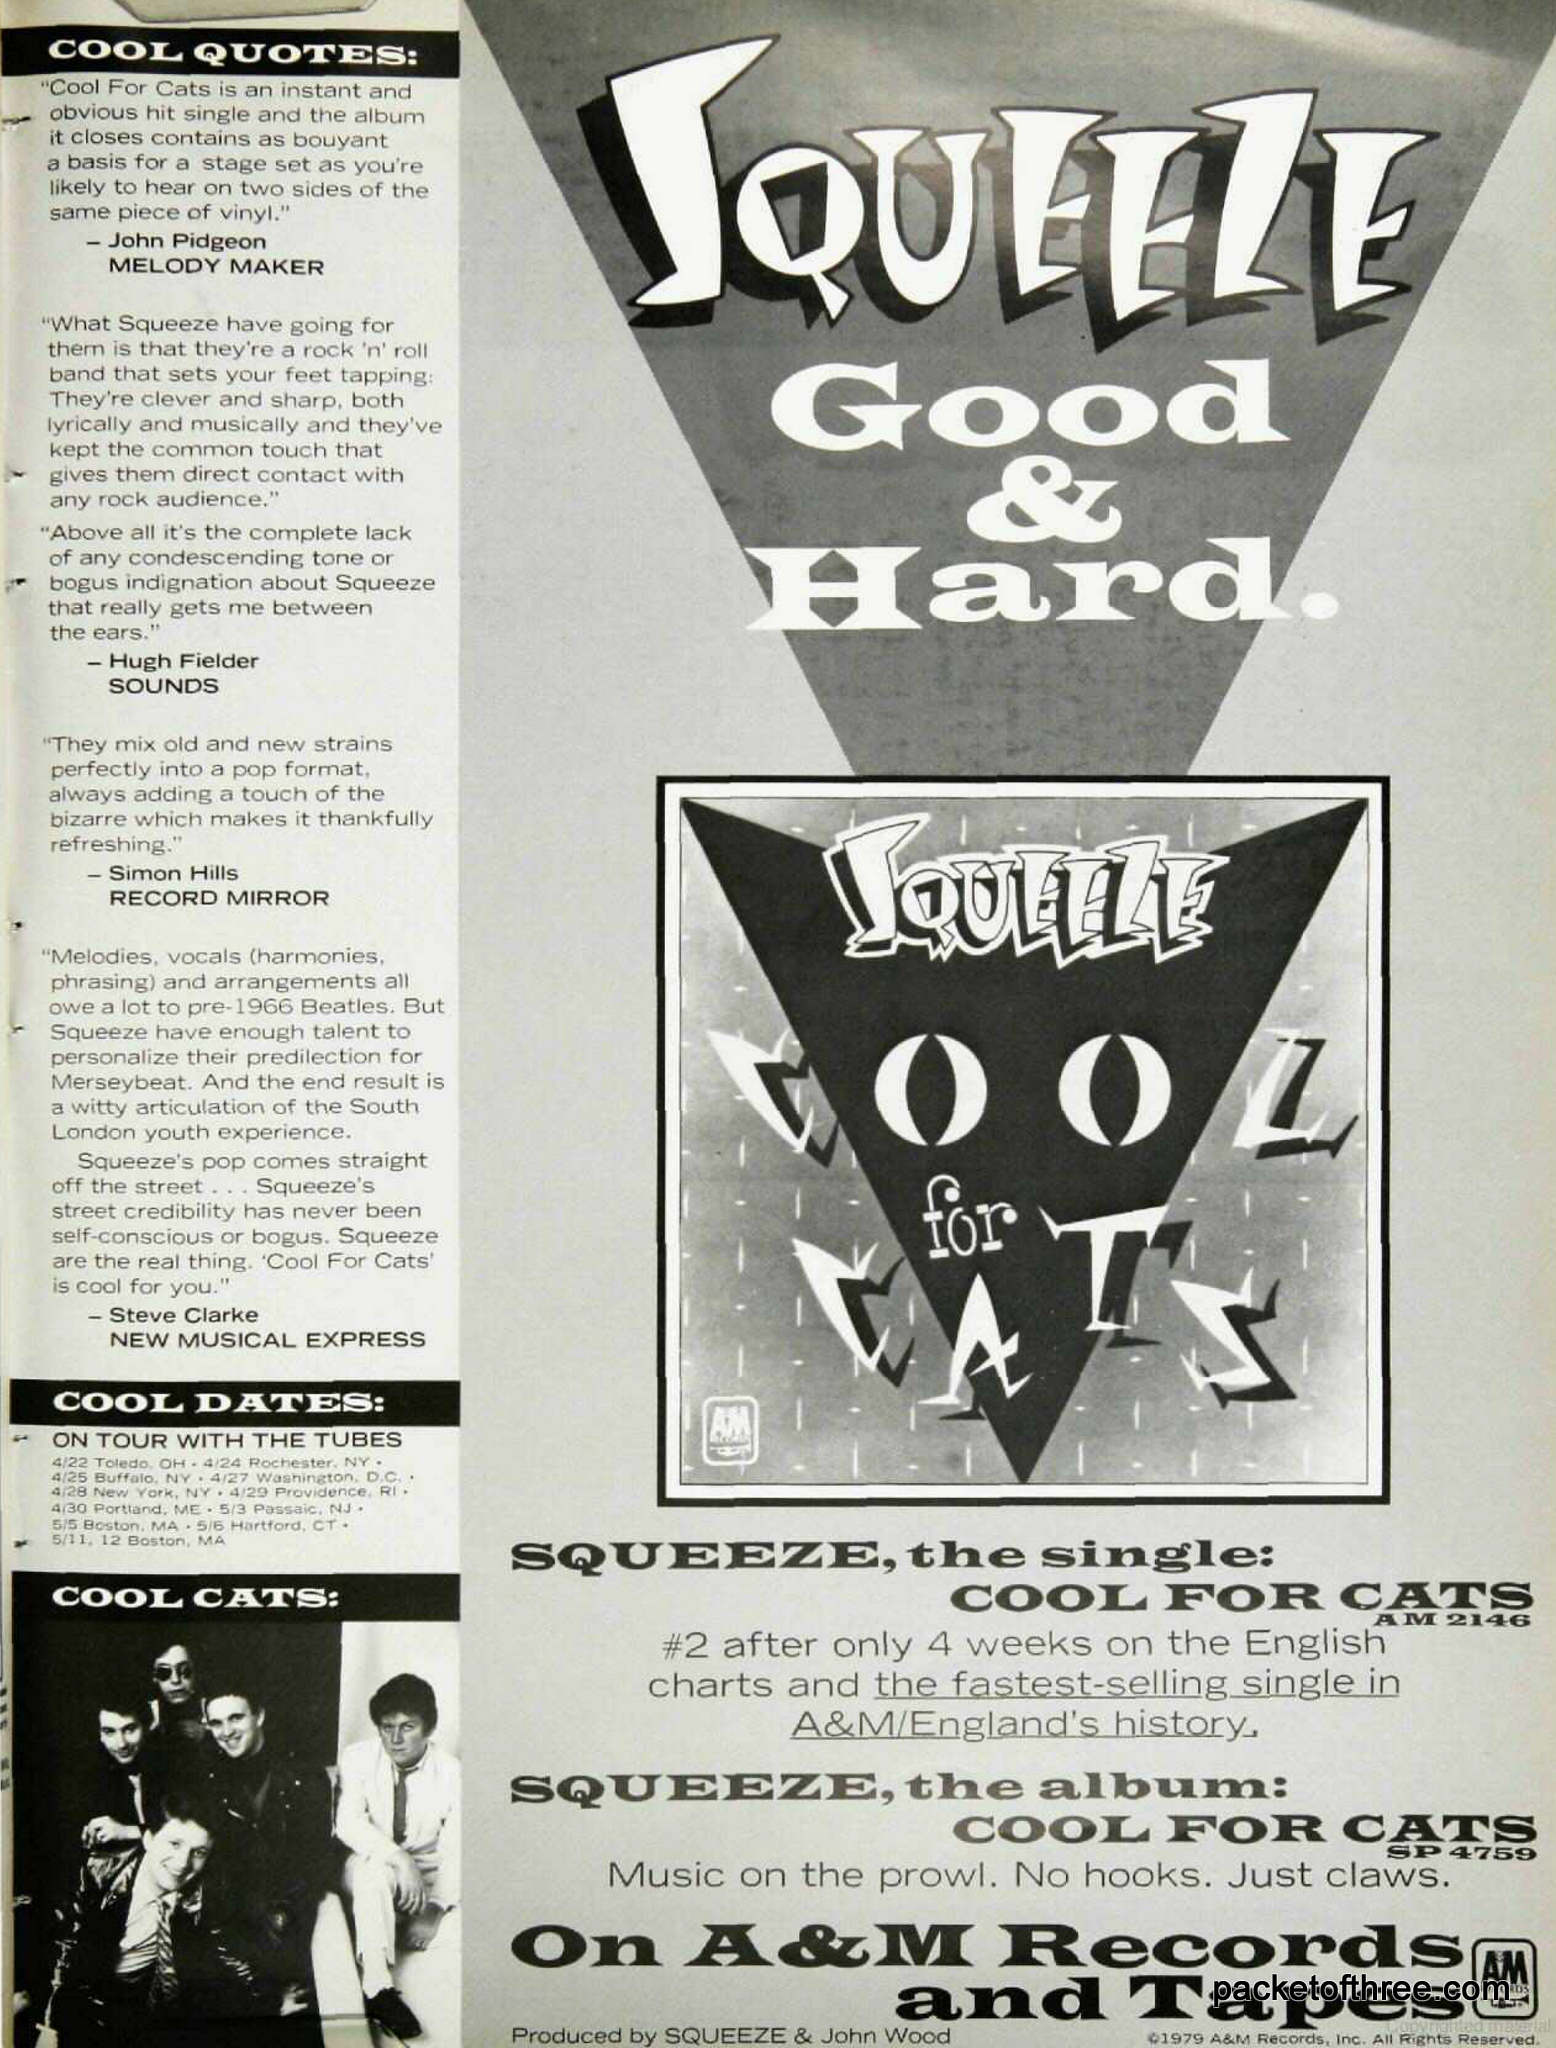 USA Tour ad 1979